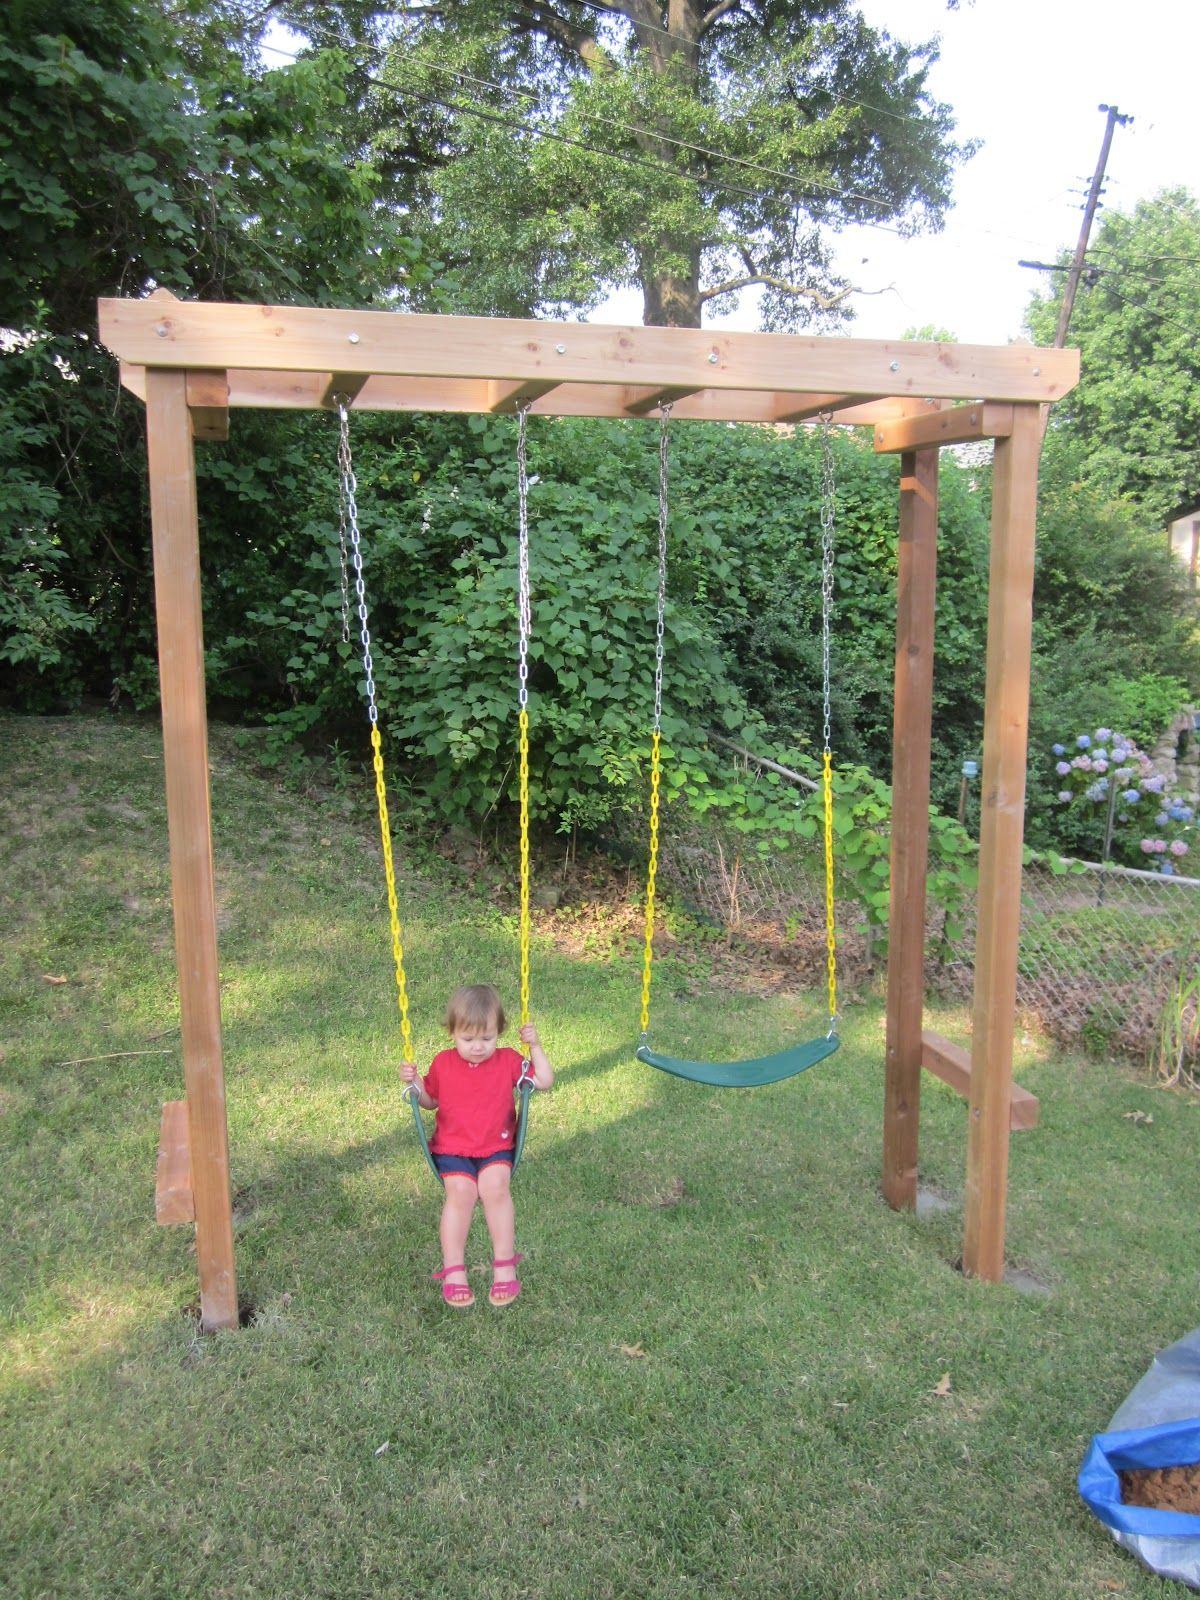 The Arbor Swing set